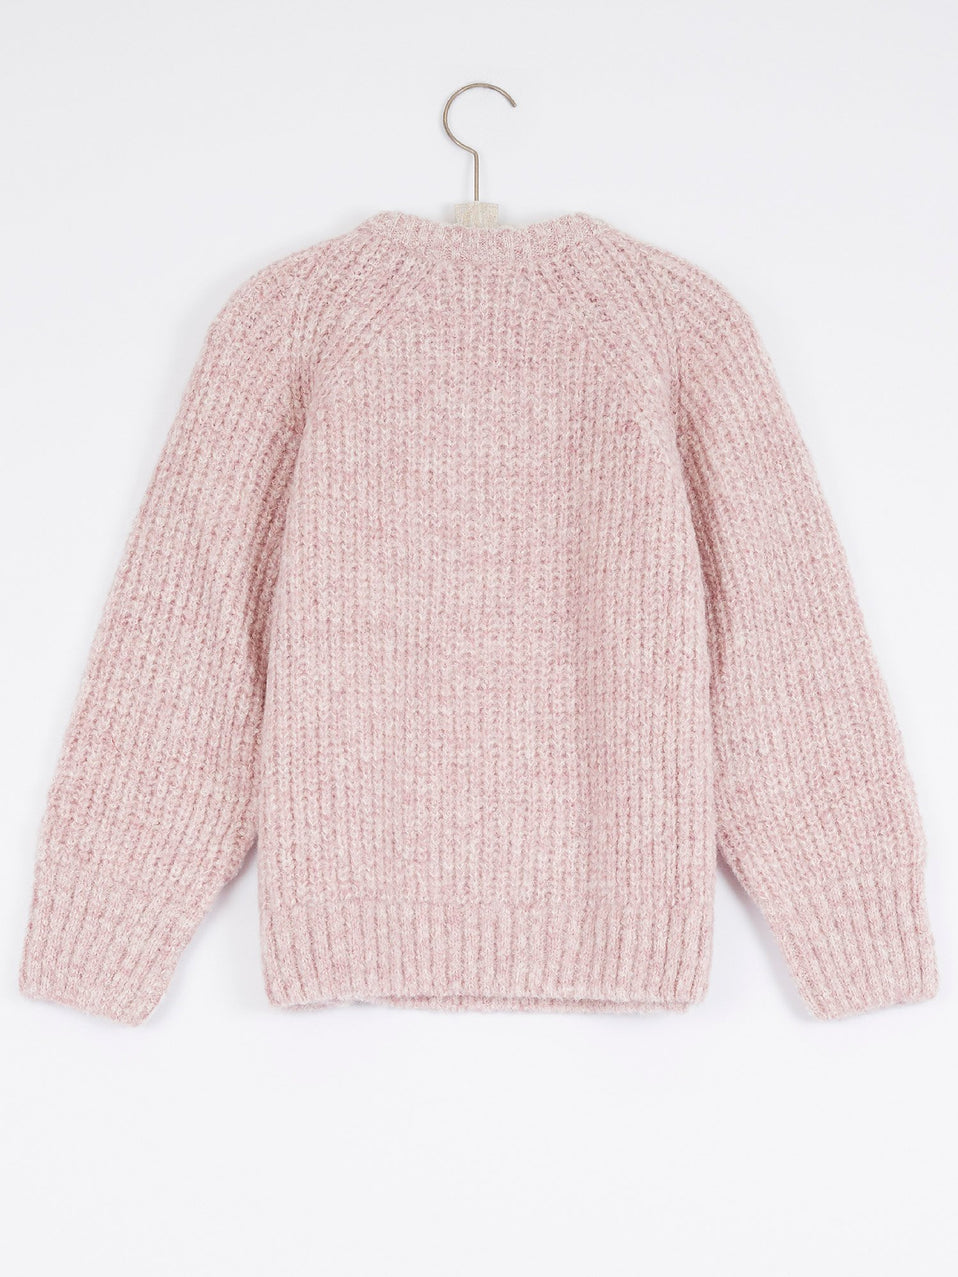 The Hutton Sweater in First Star